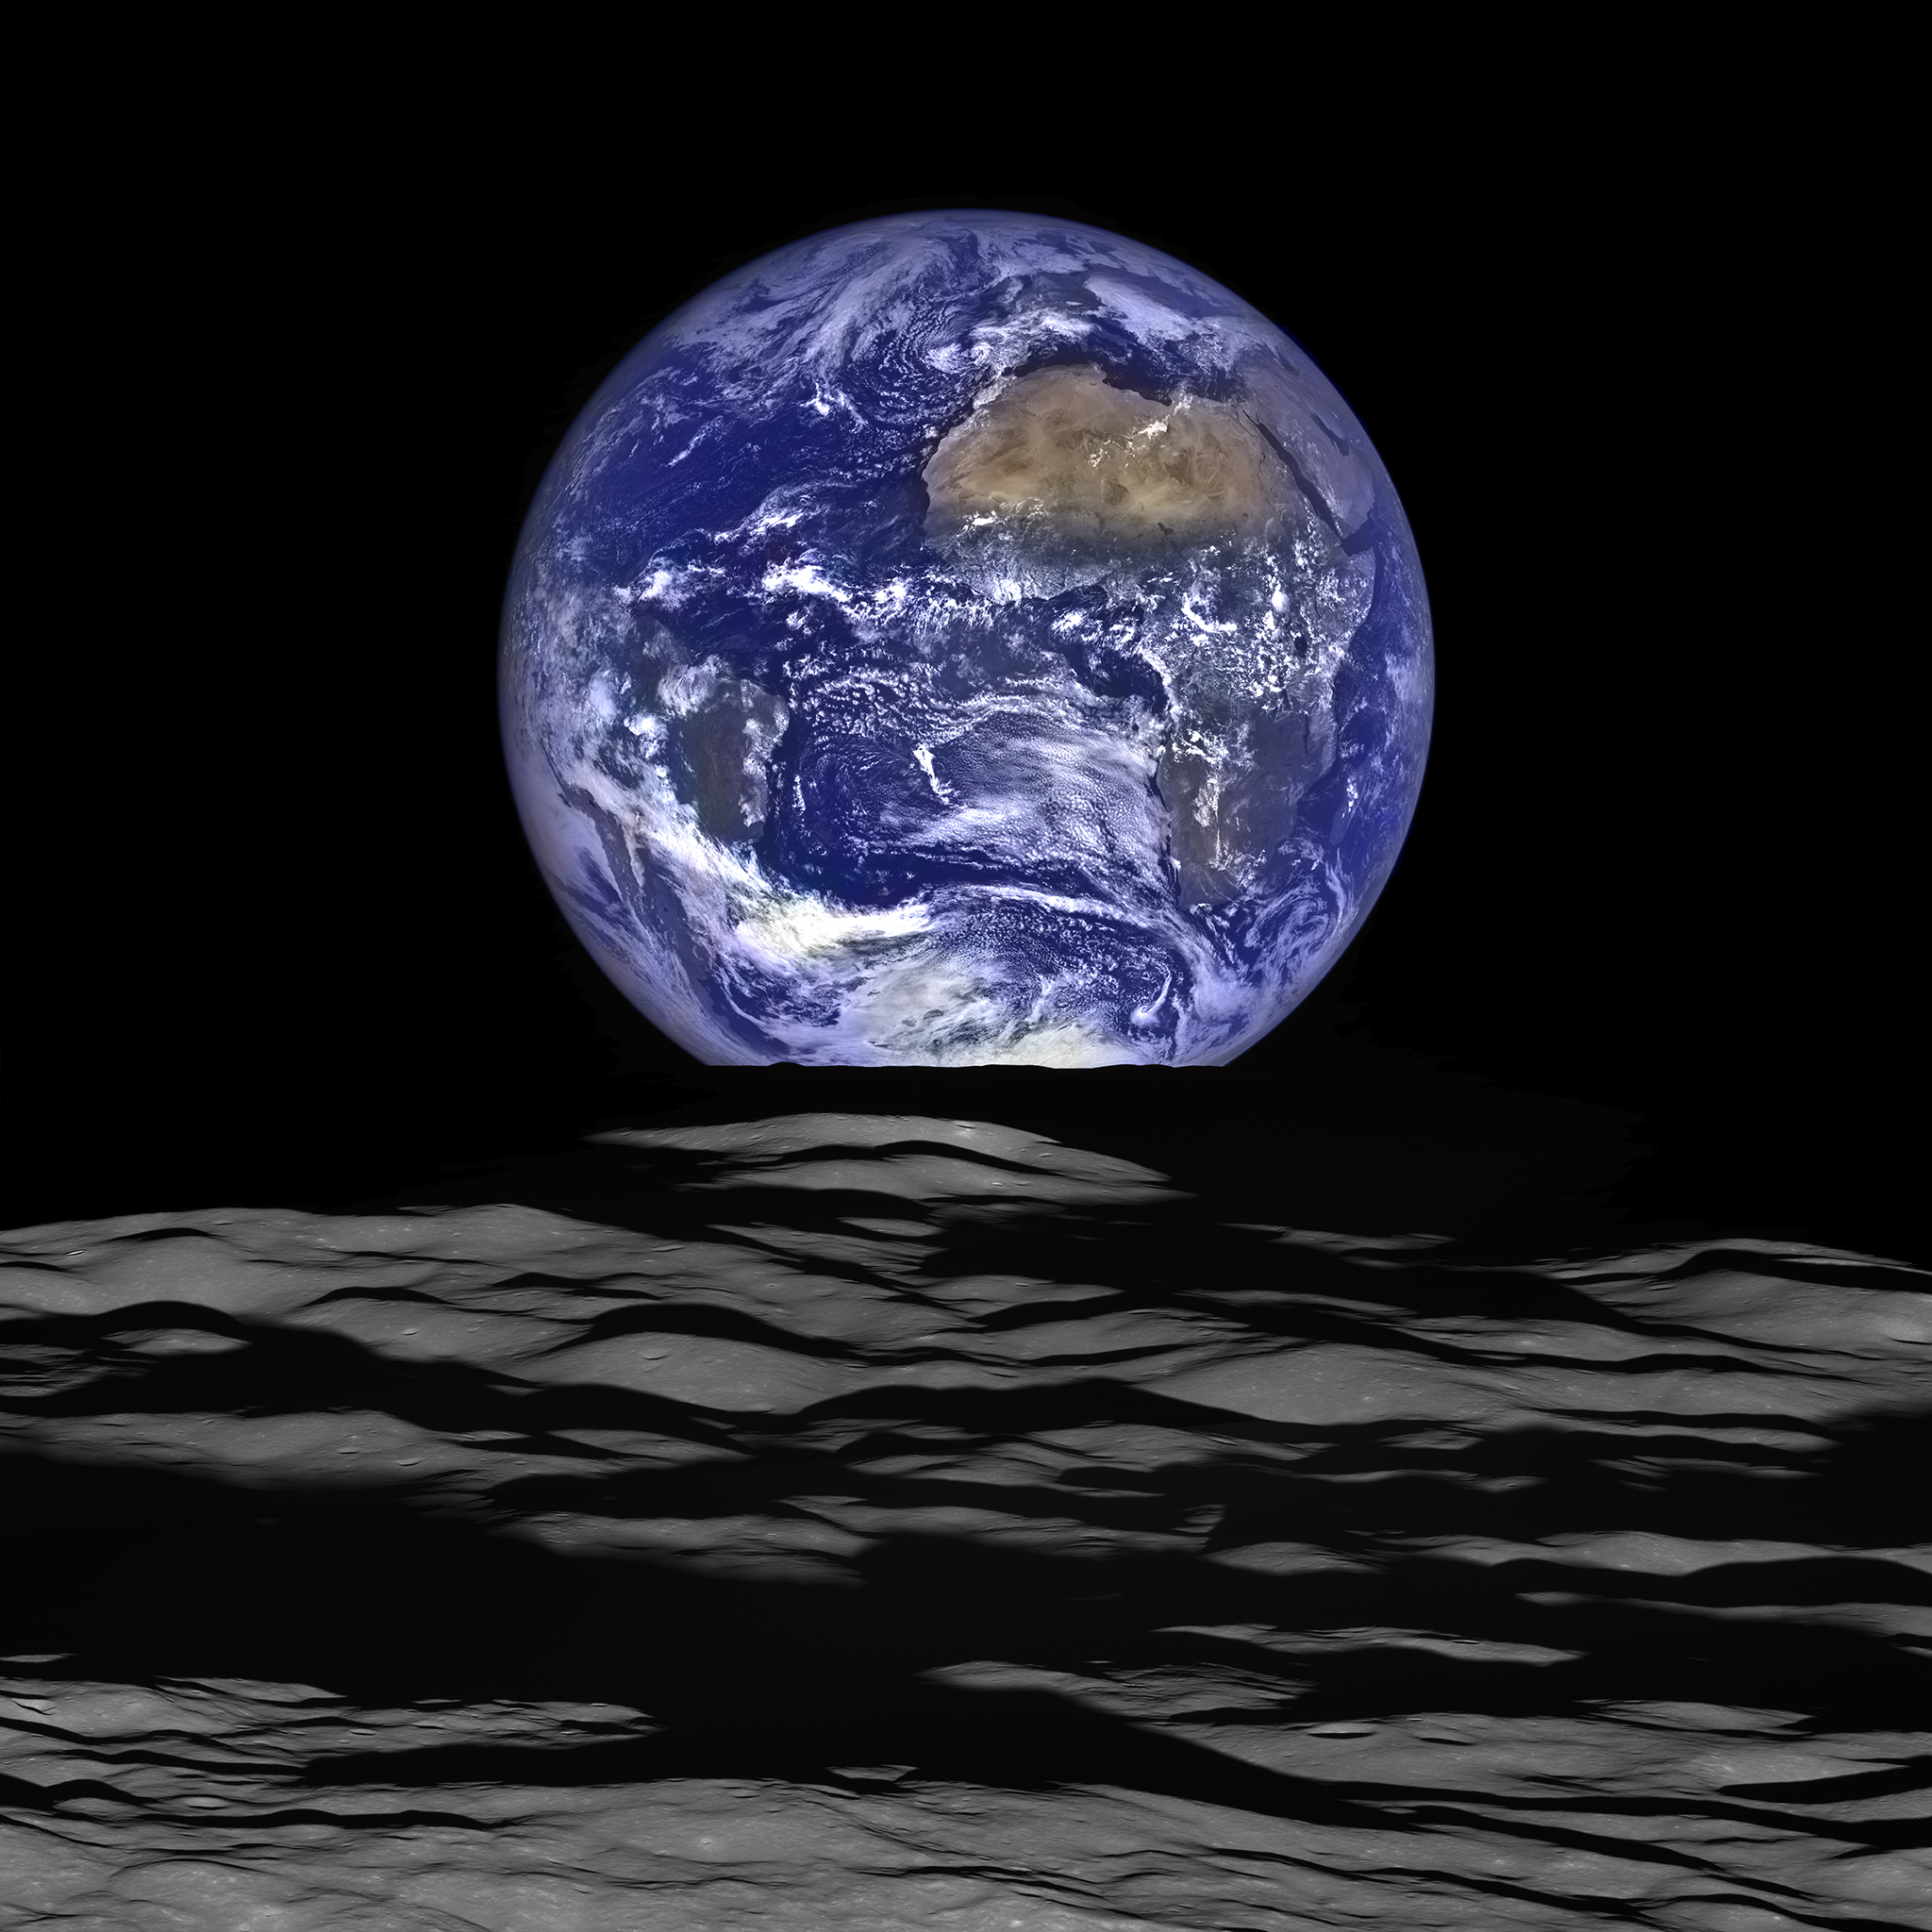 earth from the moon nasa - photo #4